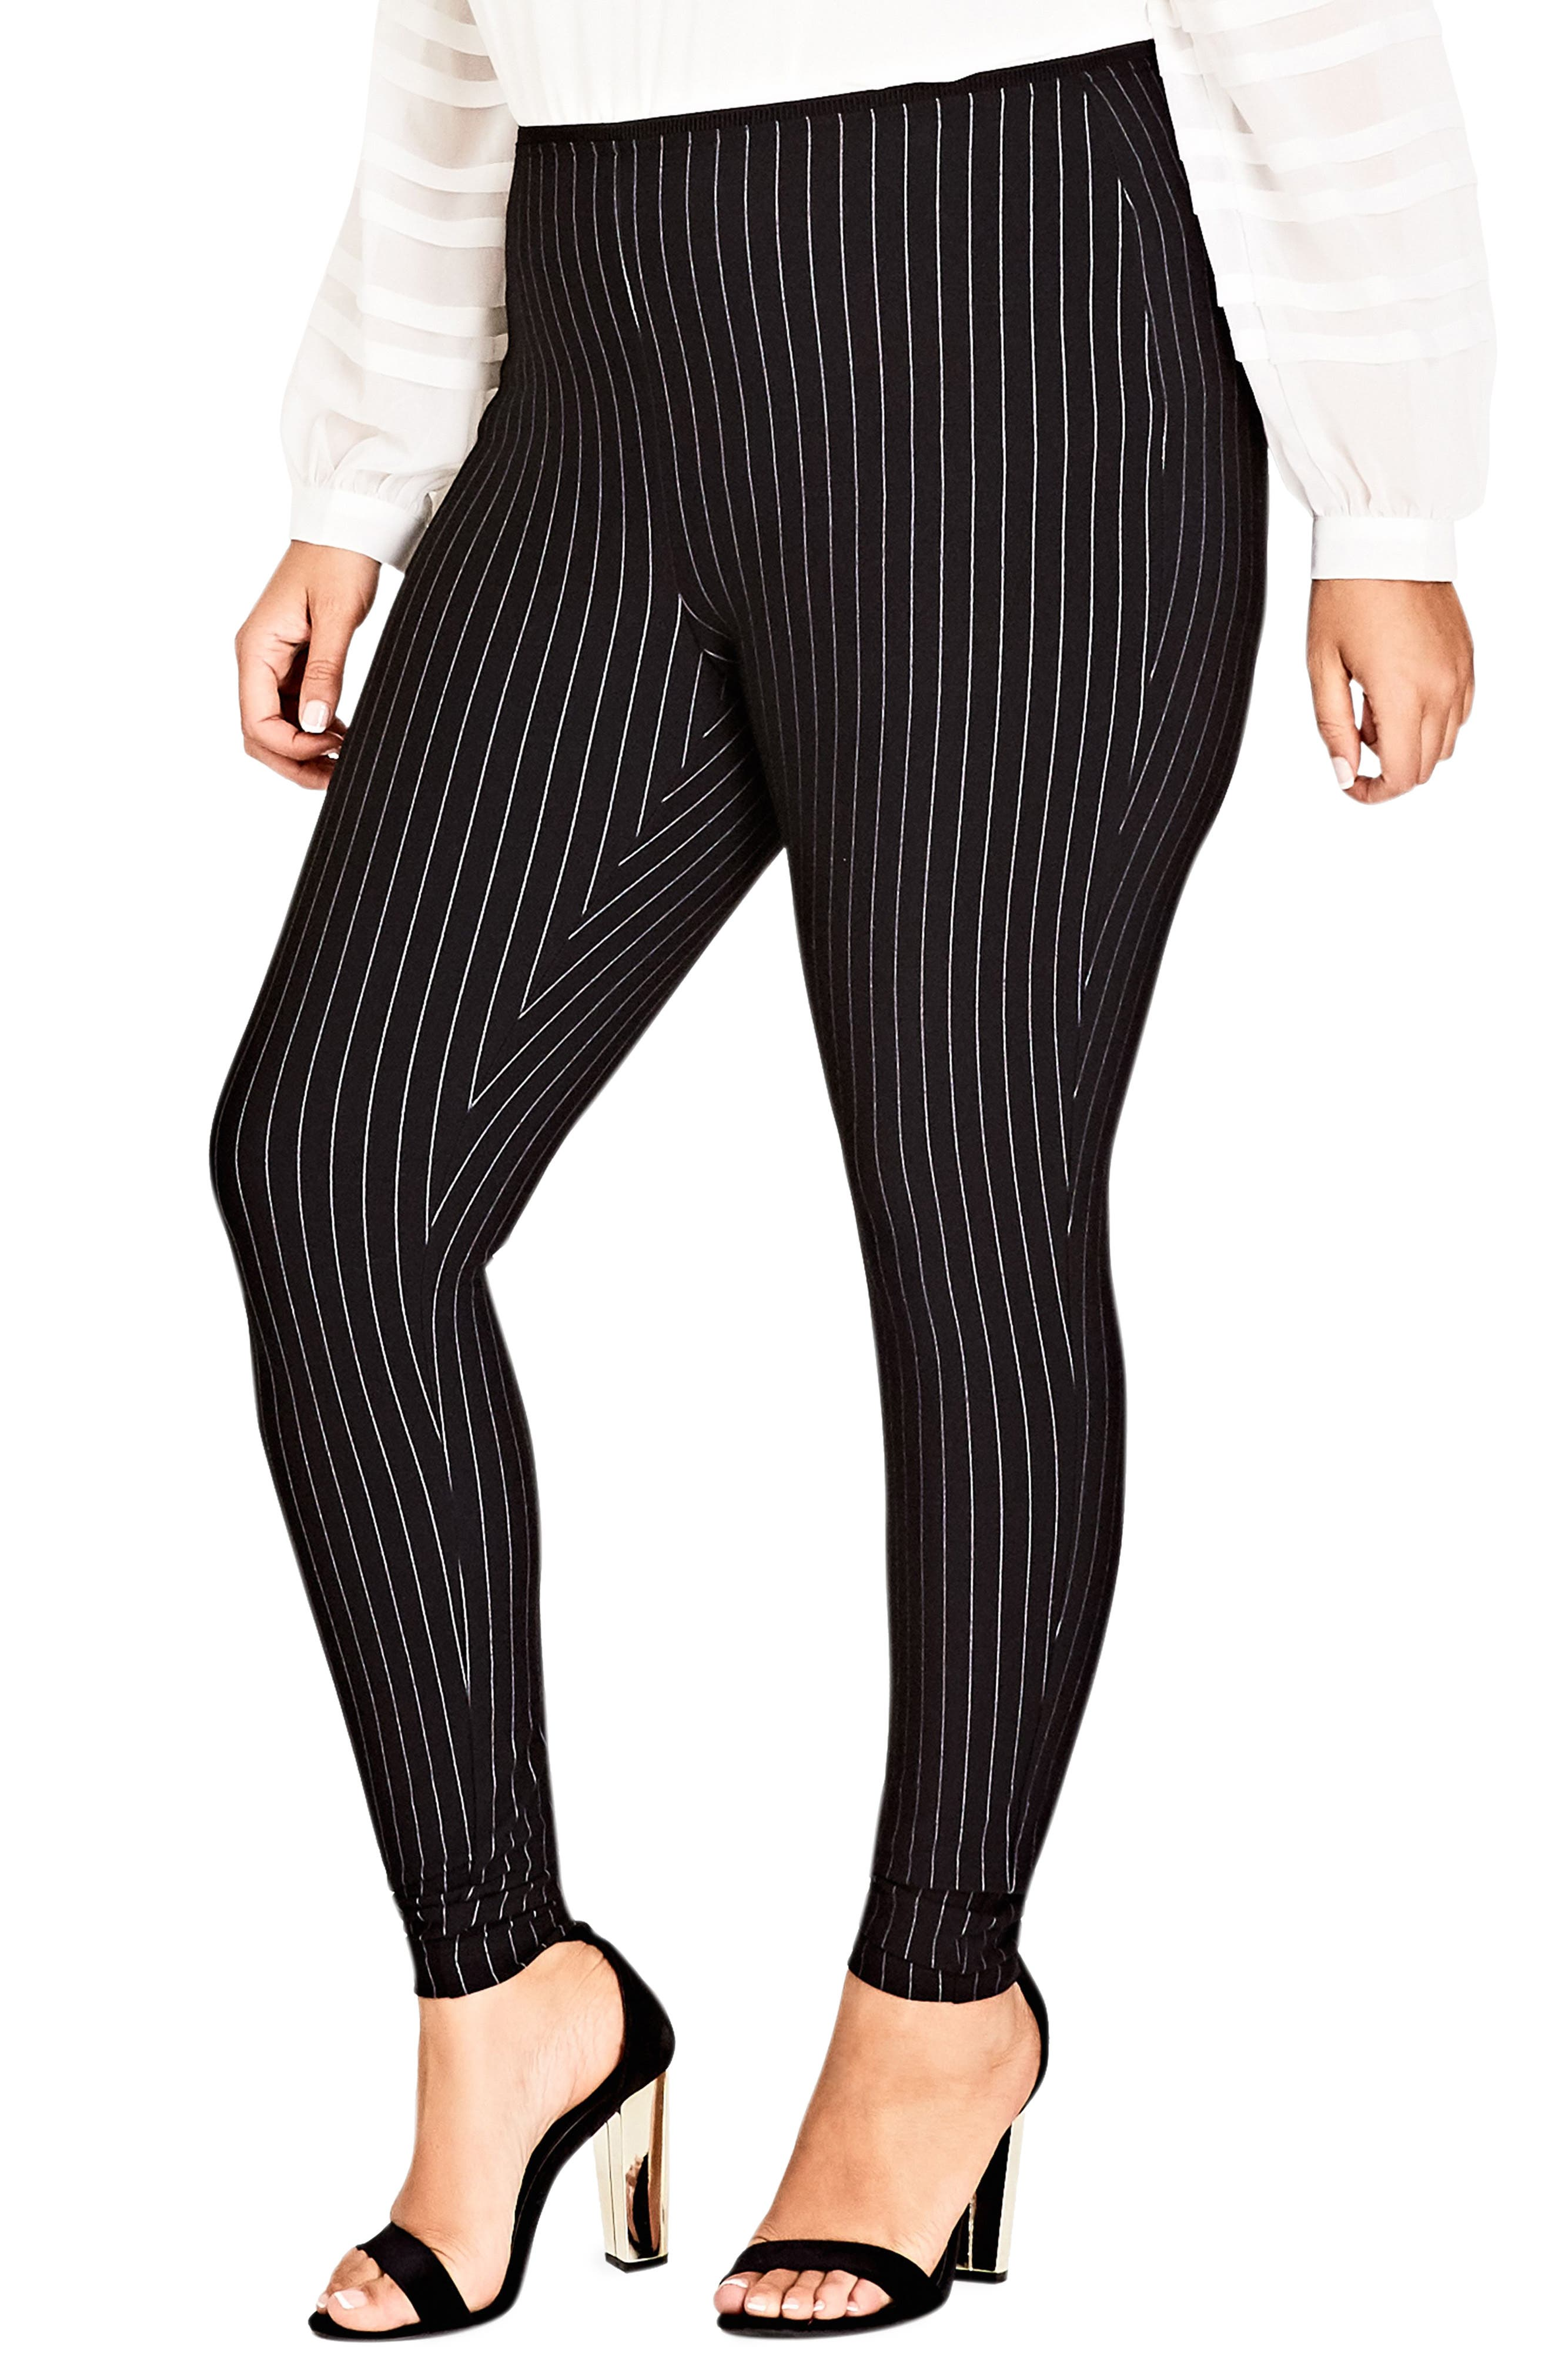 CITY CHIC Chic City Simply Striped Skinny Pants, Main, color, 001